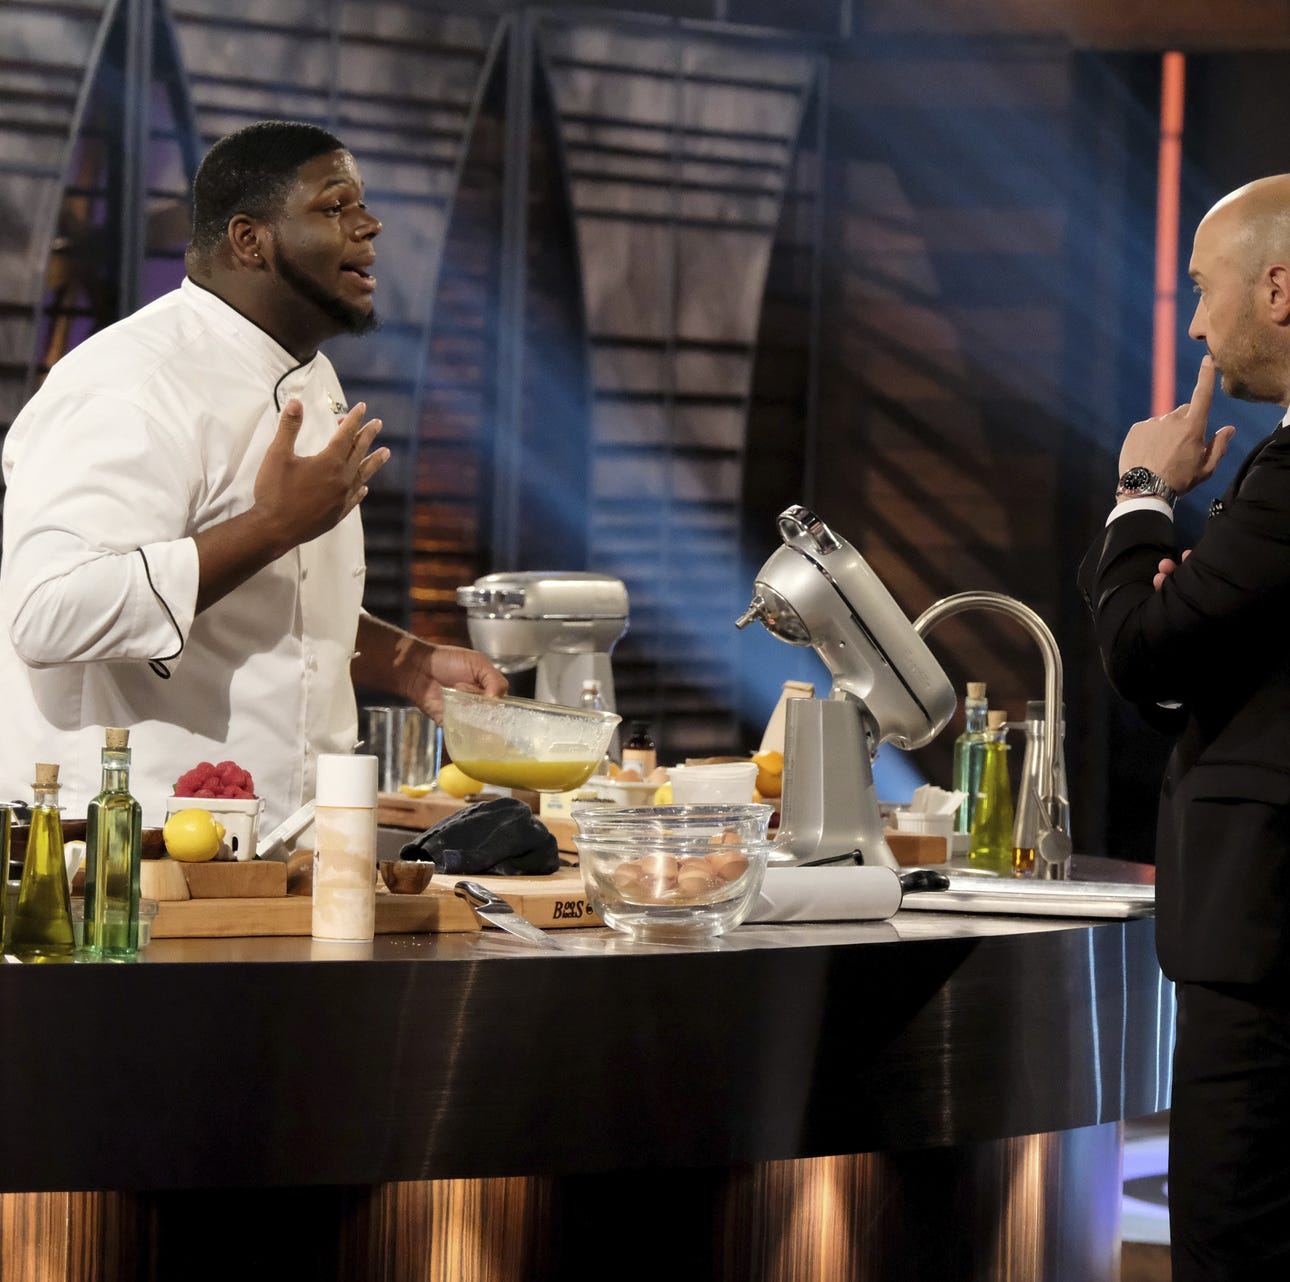 Can Louisville's 'MasterChef' cook win it all? How to watch the finale